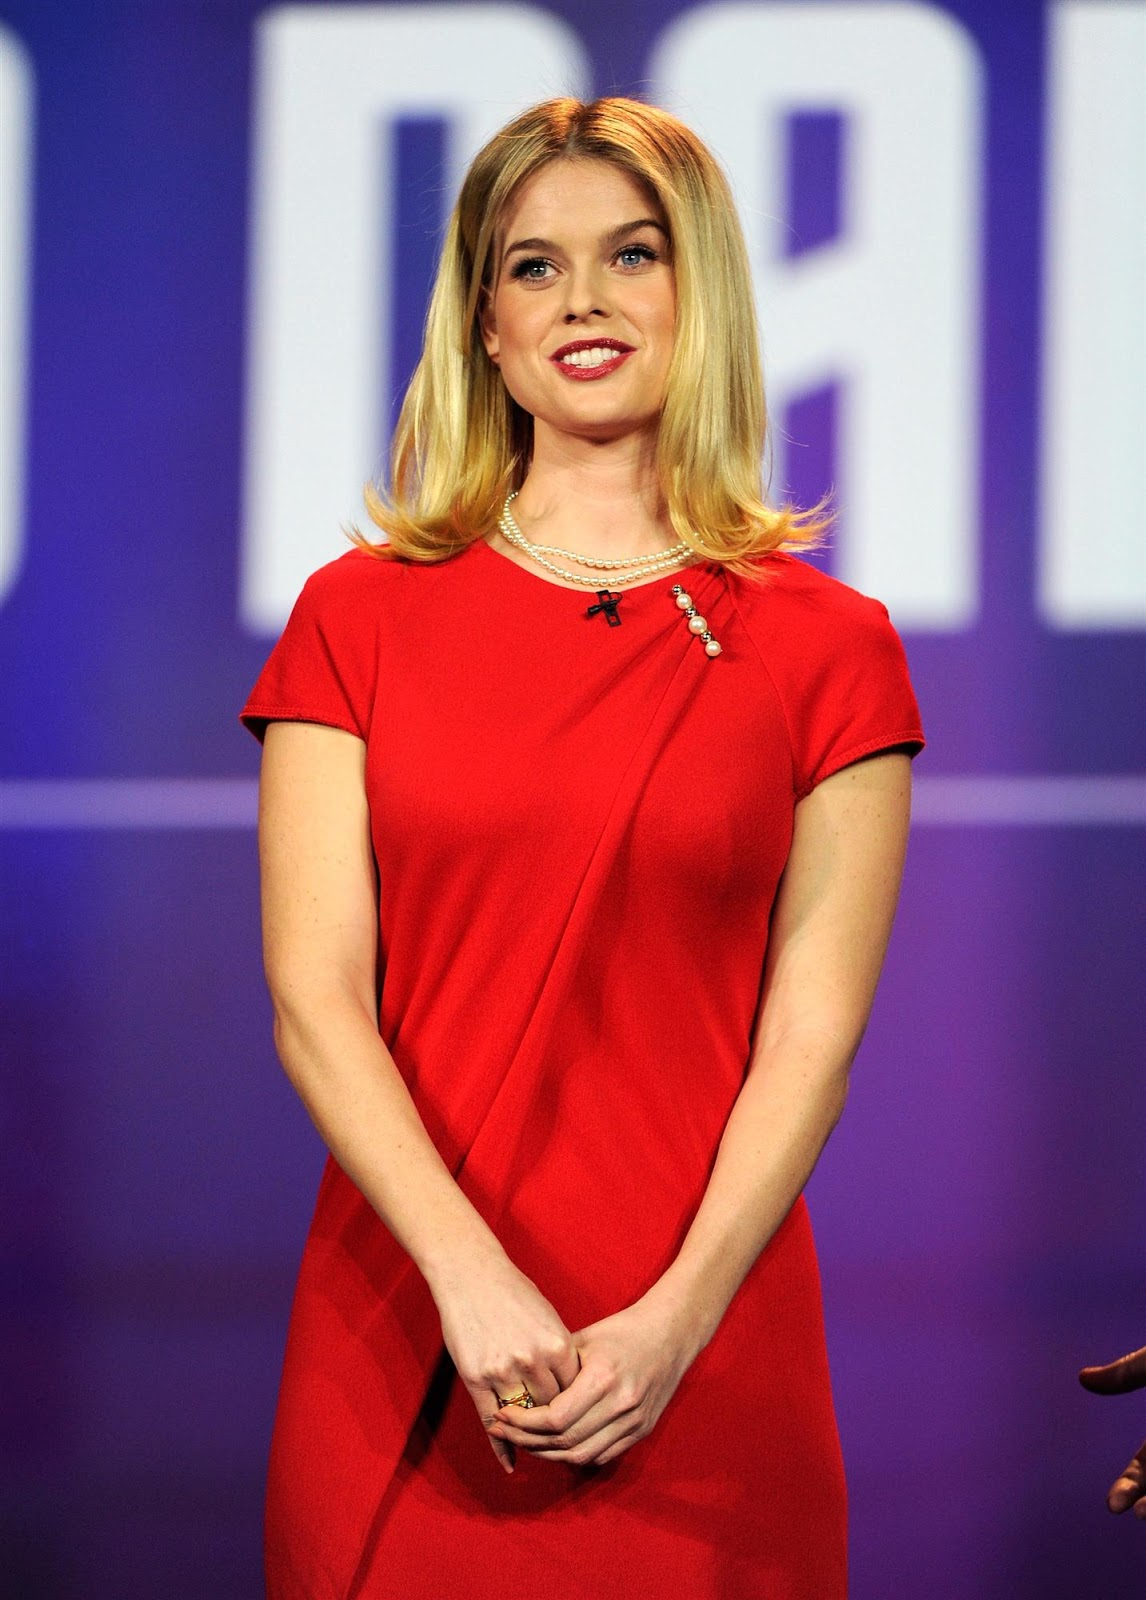 Alice Eve Looking Hot in Red Dress at 2013 International ...